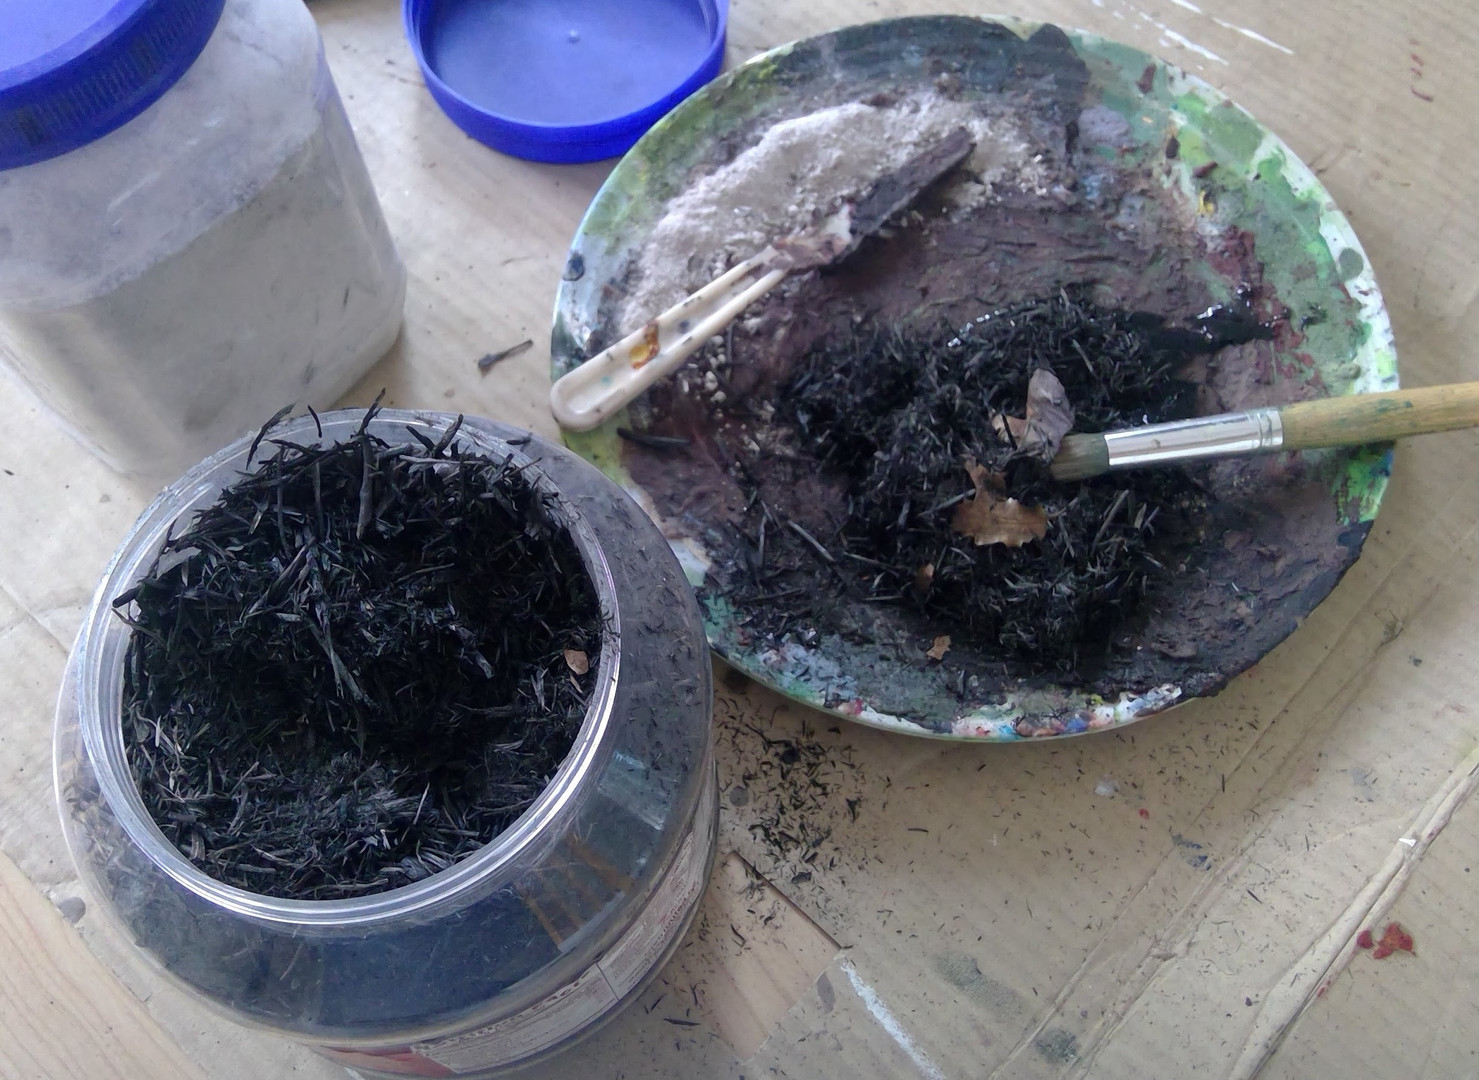 ash collected from the fre around my hom